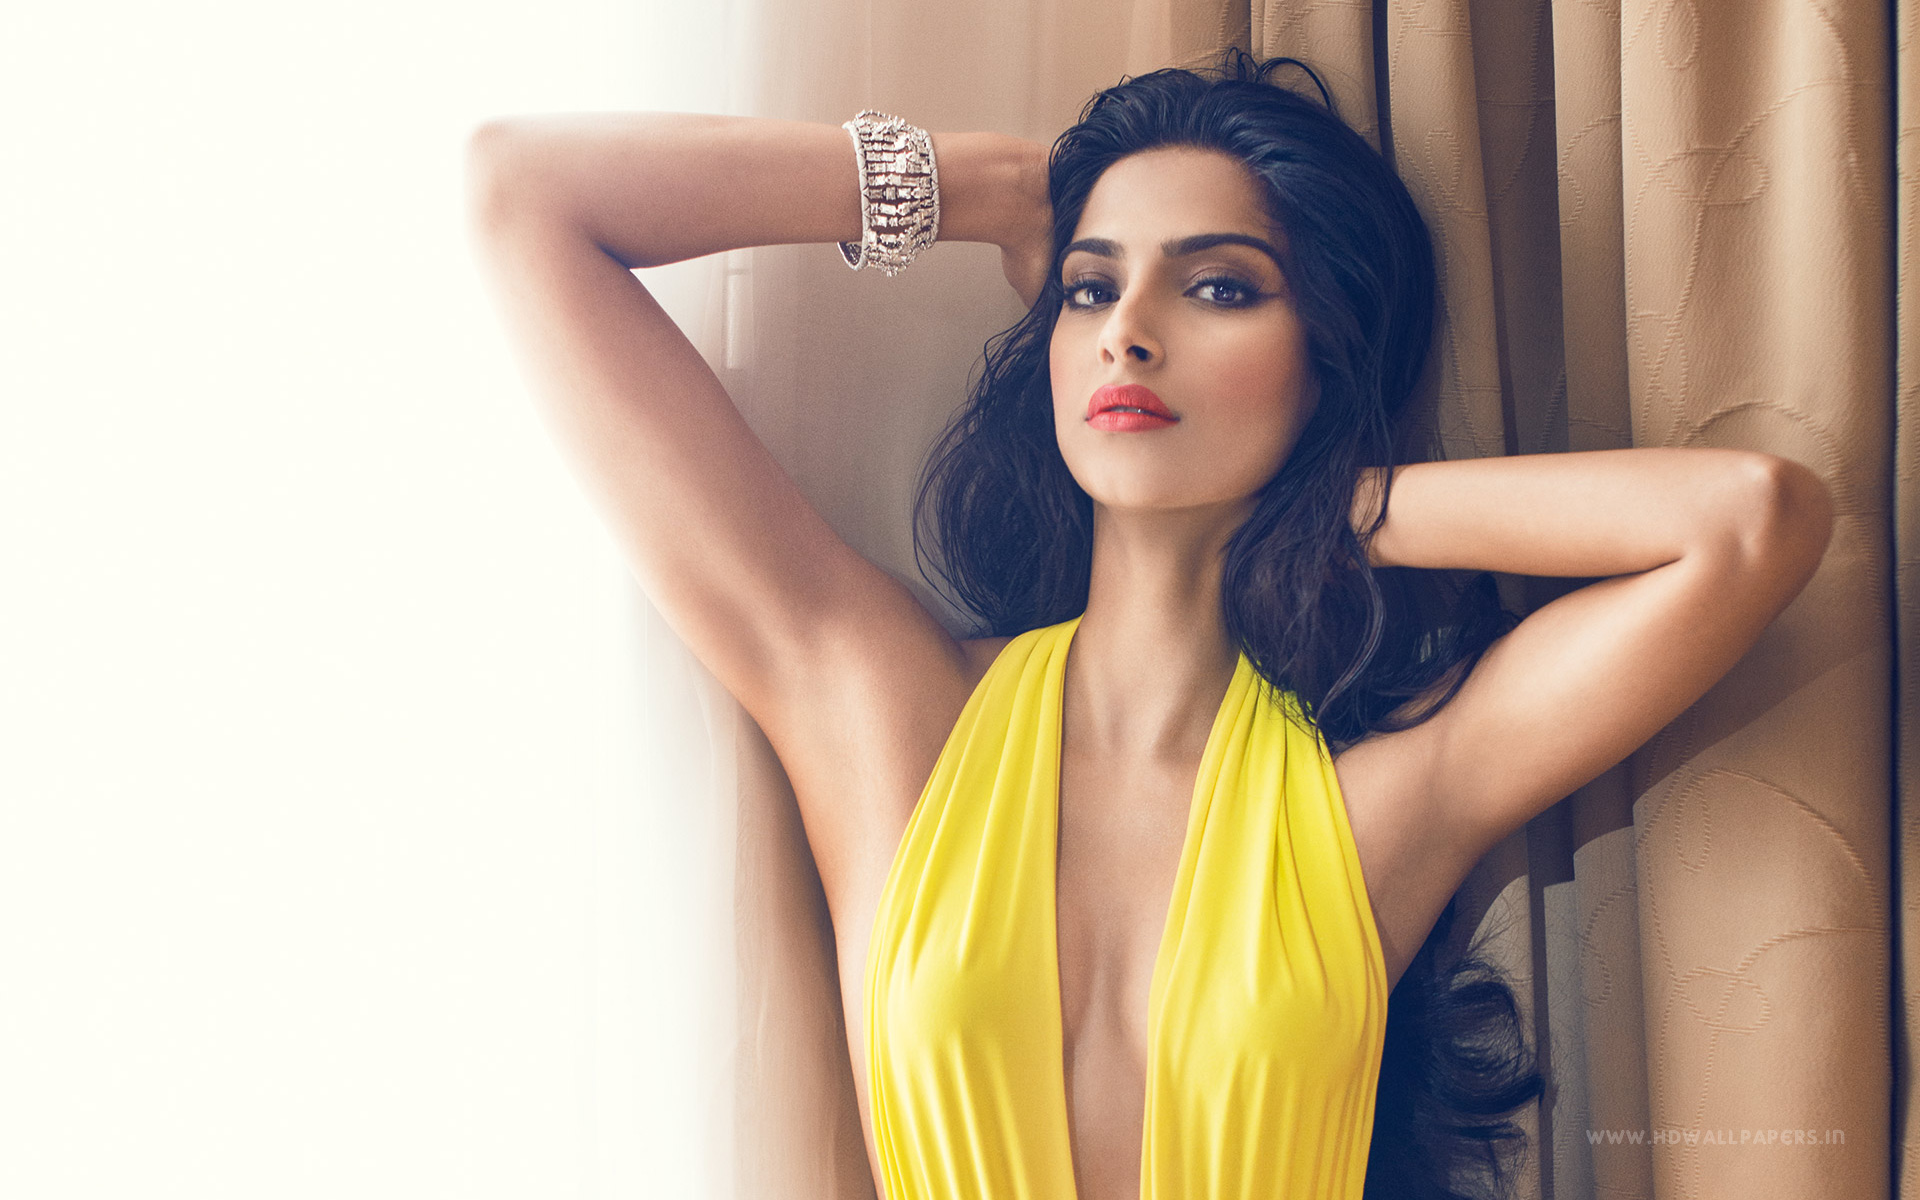 sonam kapoor wallpapers high resolution and quality download